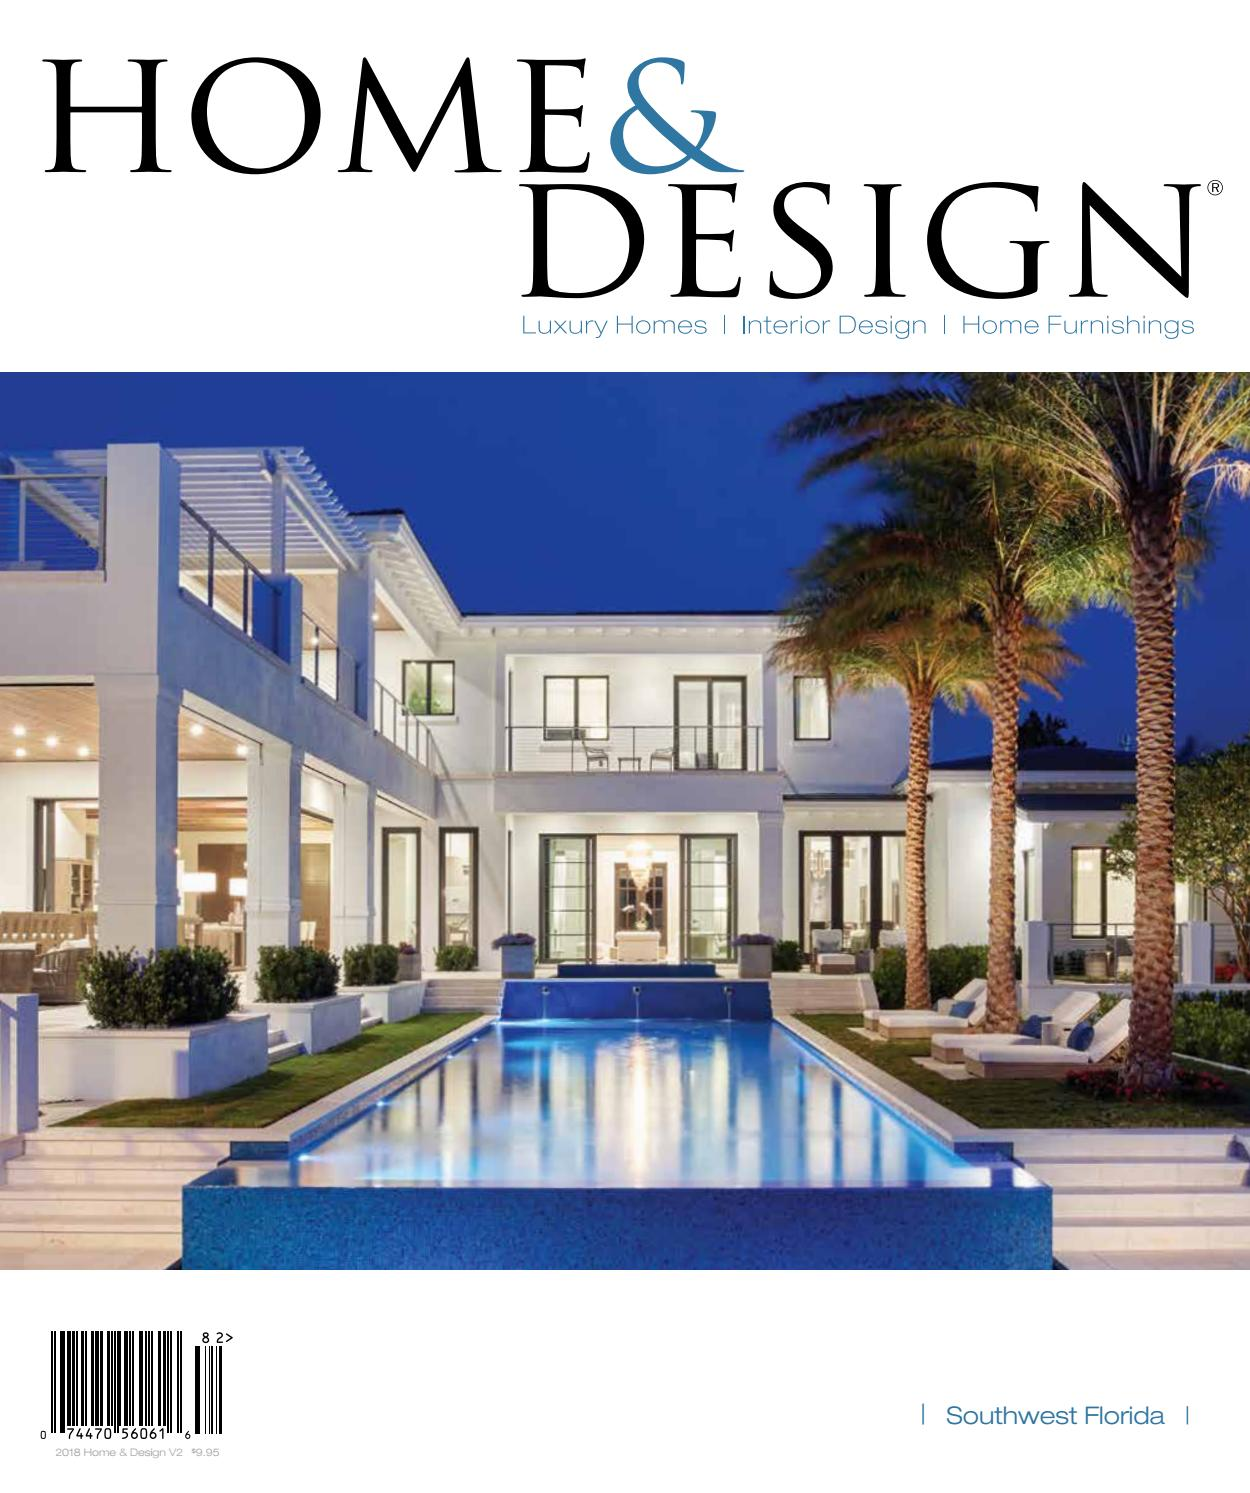 Home And Design | Southwest Florida | Oct 2018 By Jennifer Evans   Issuu